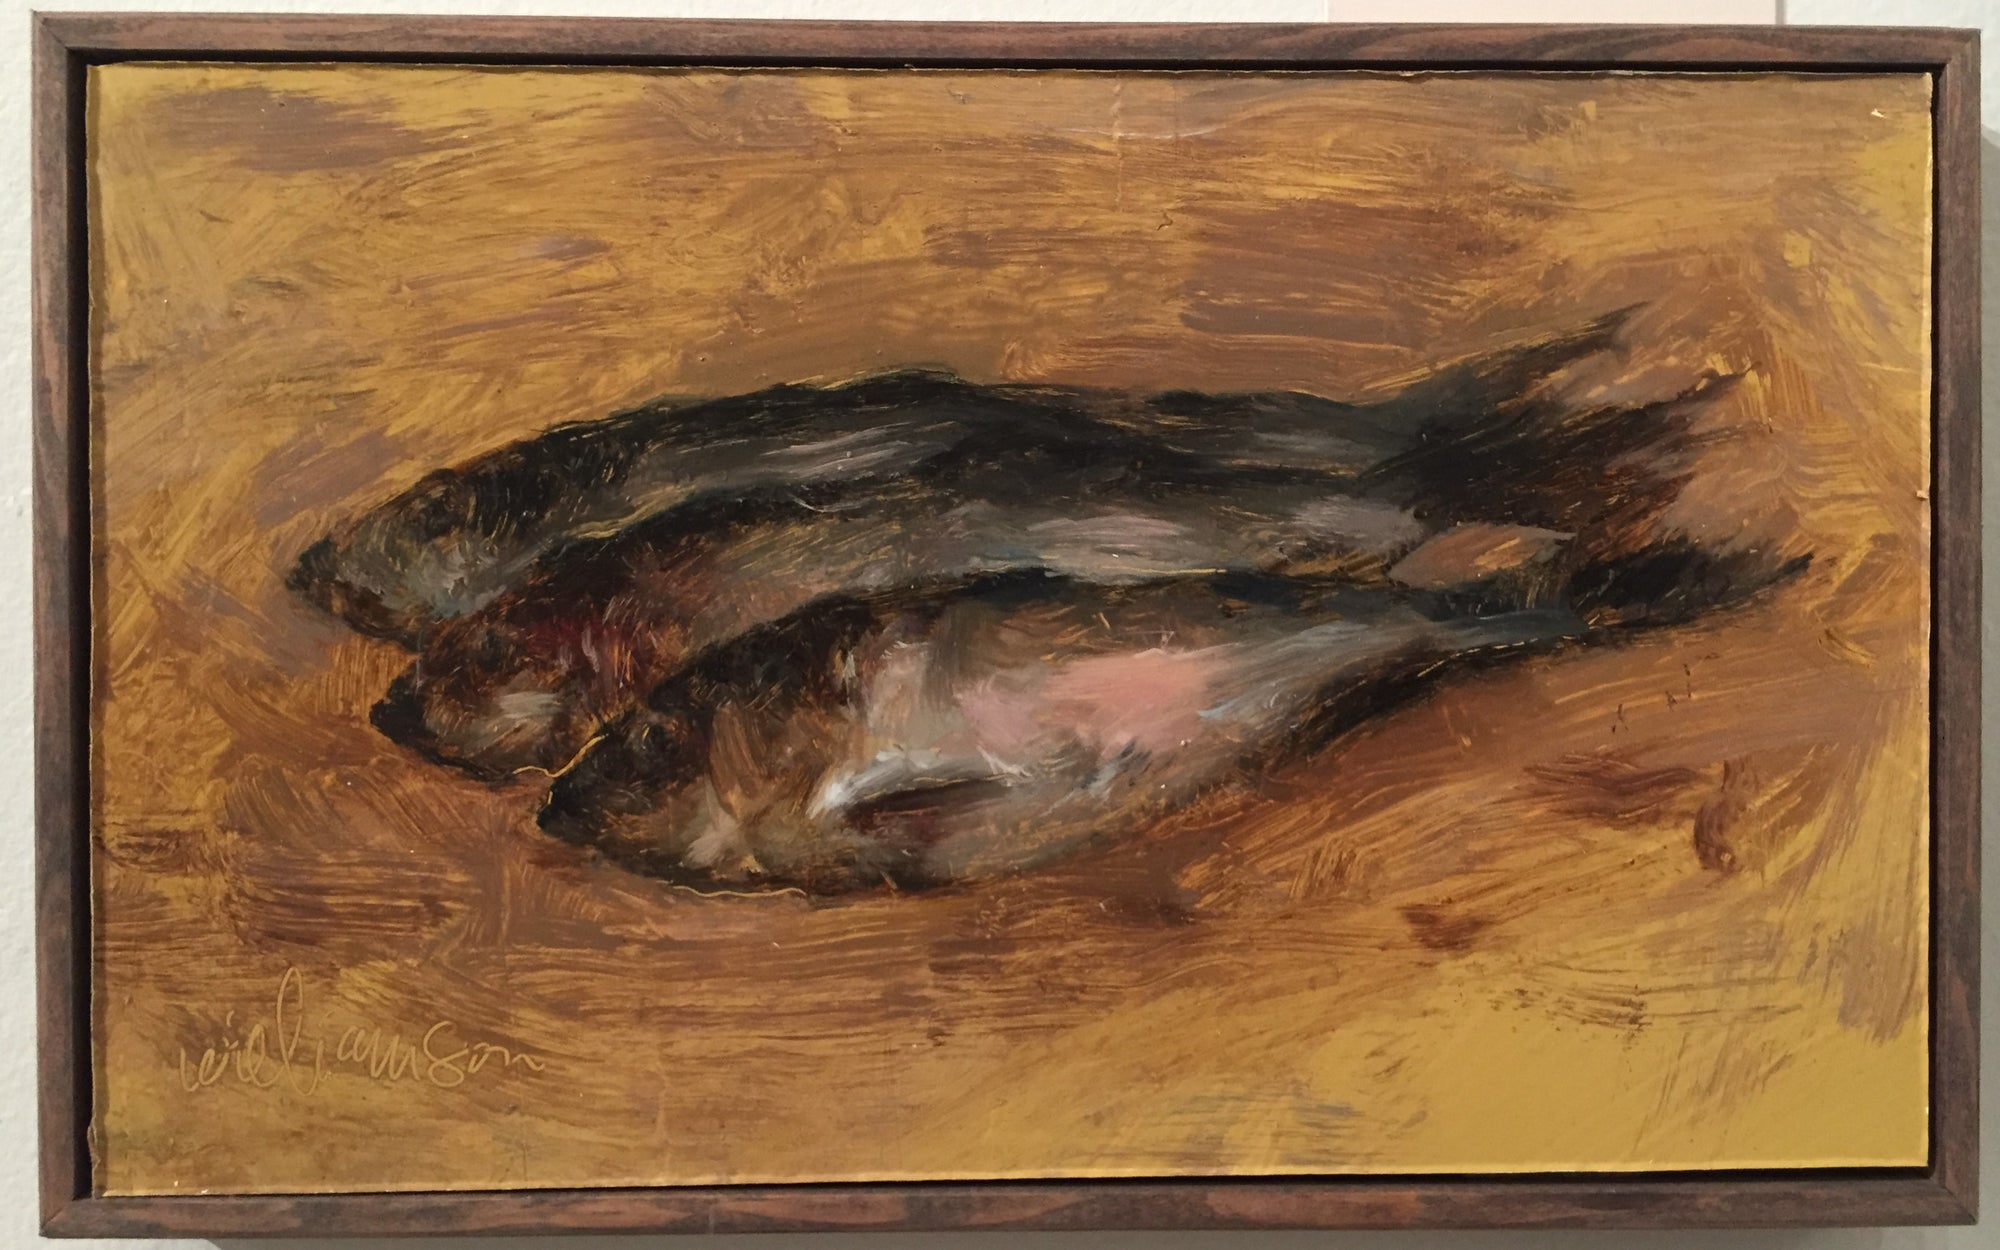 Small oil painting of herring fish dead after fishing trip in mel willamson's signature classic painting style